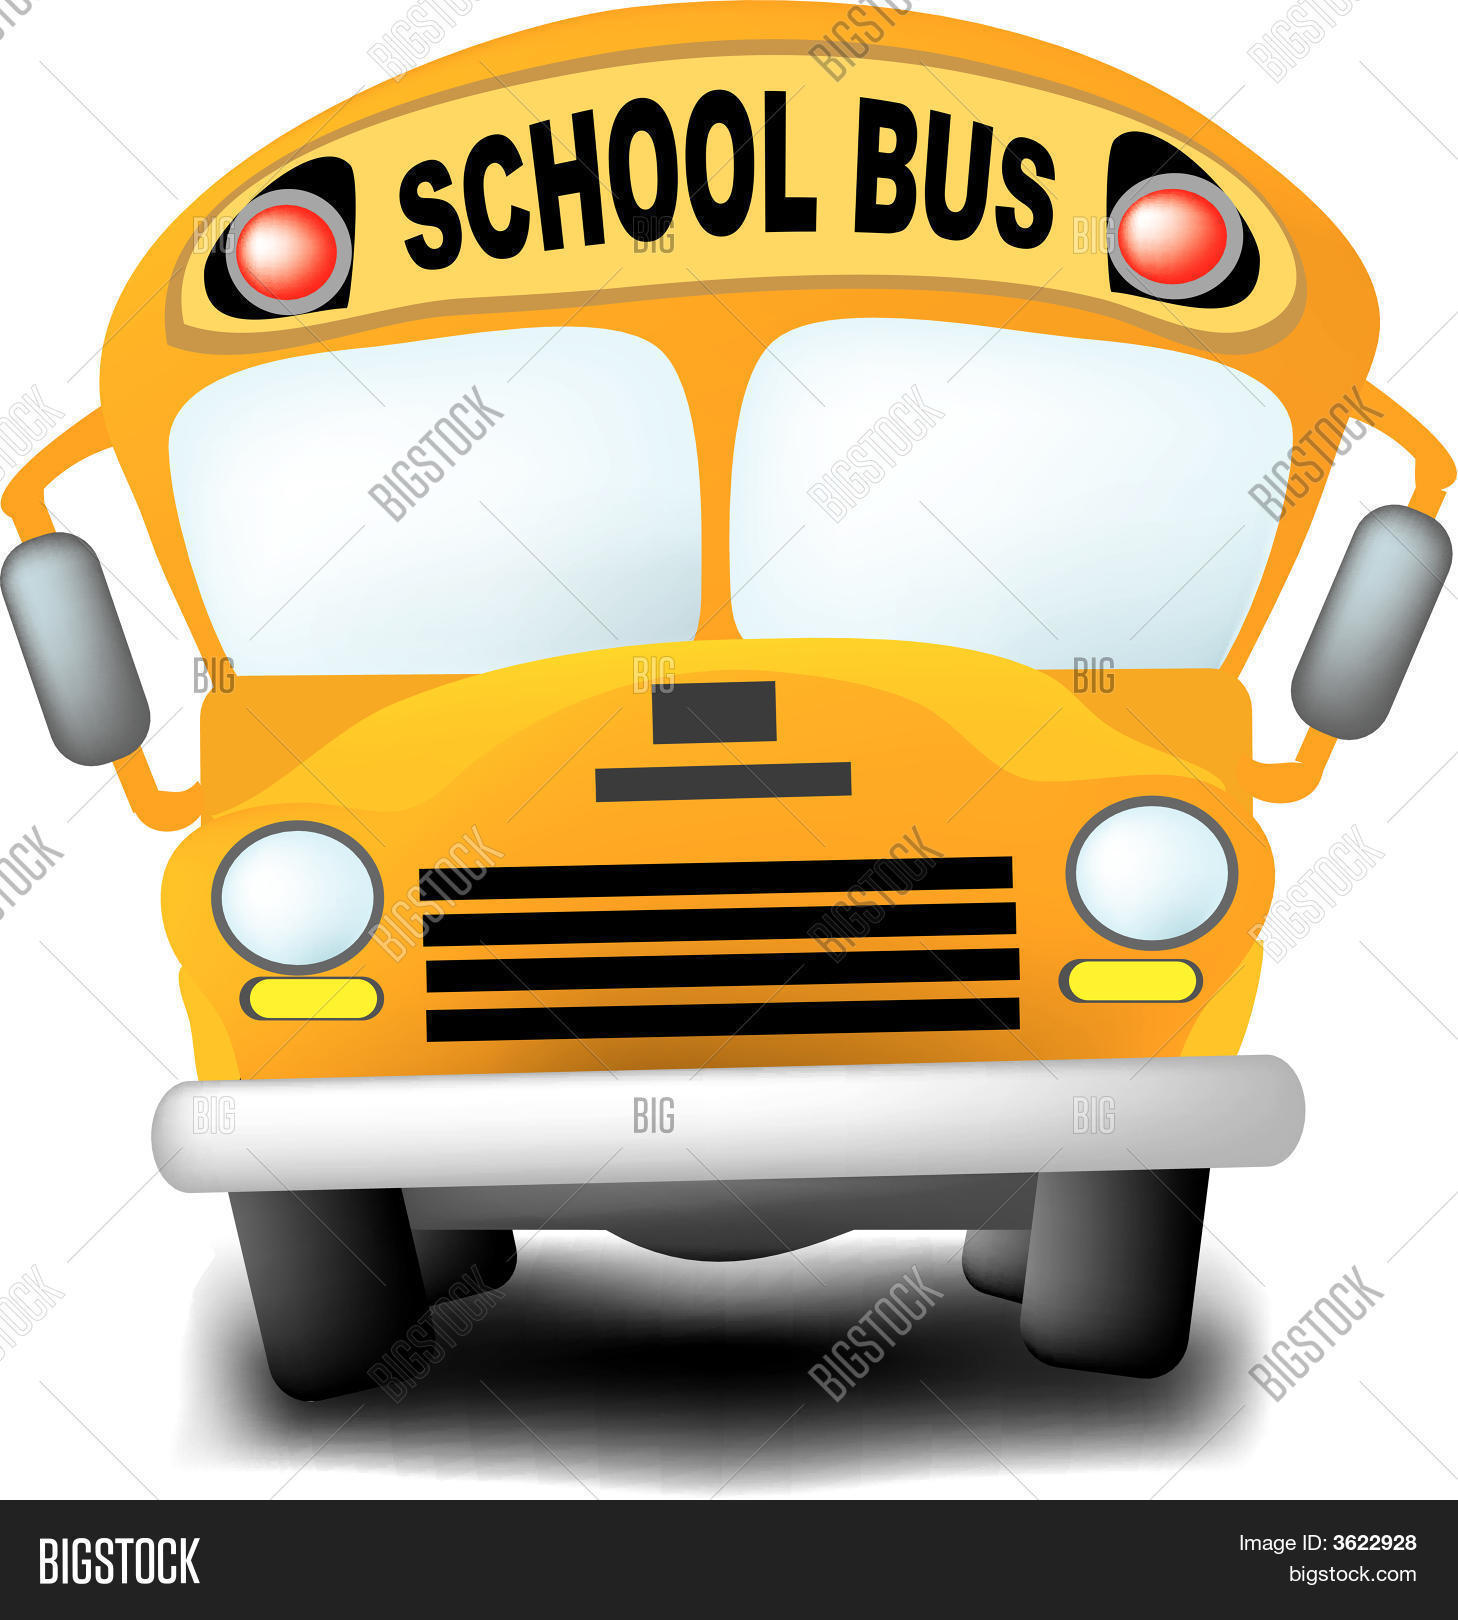 school bus vector photo free trial bigstock rh bigstockphoto com School Bus Illustration Cartoon School Bus Clip Art